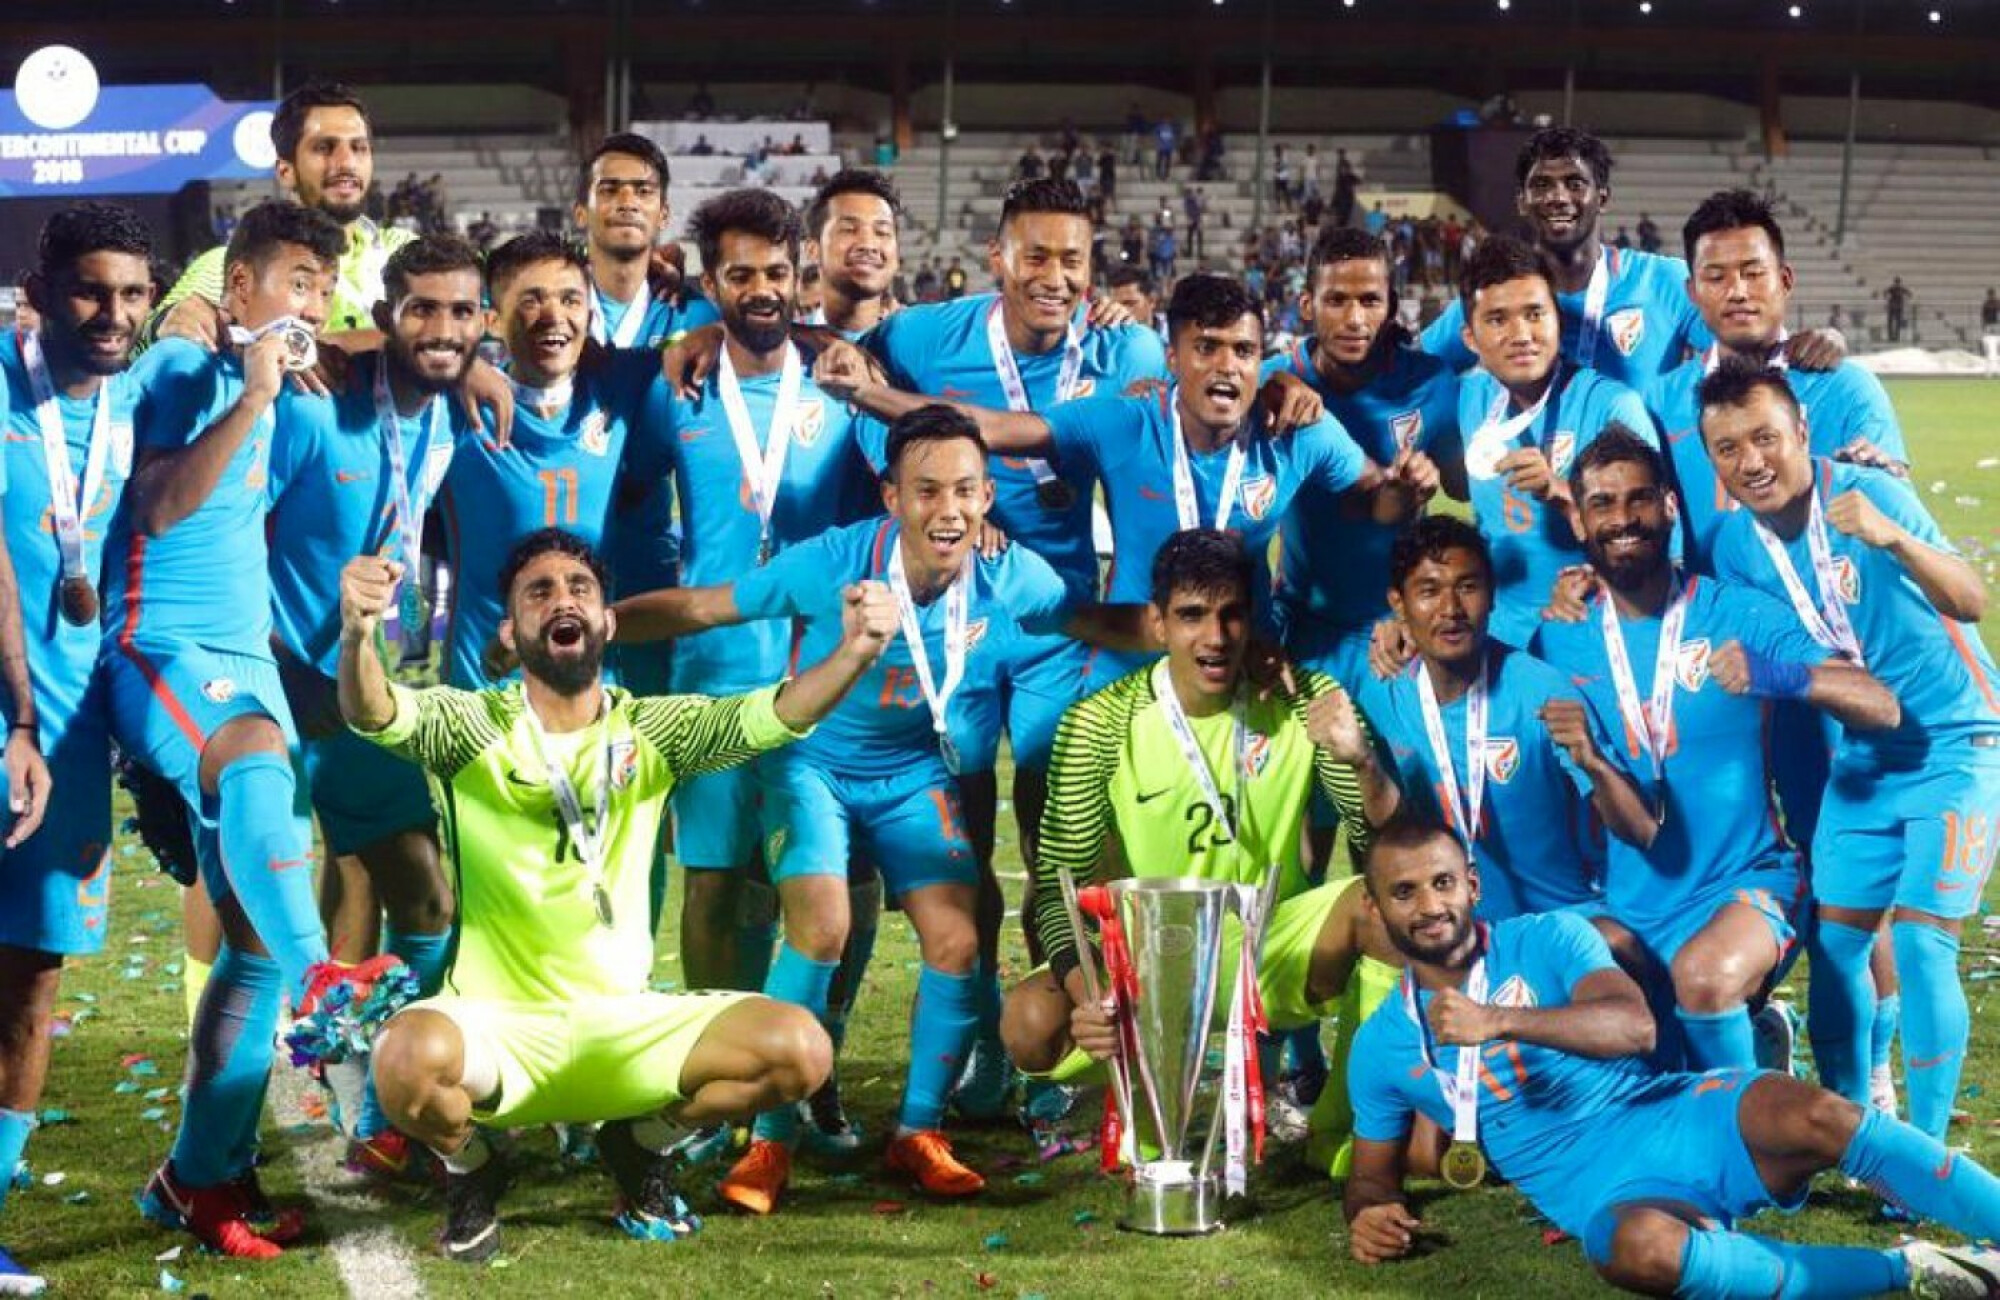 Intercontinental Cup 2019: Fixtures announced, India to face Tajikistan in the opener